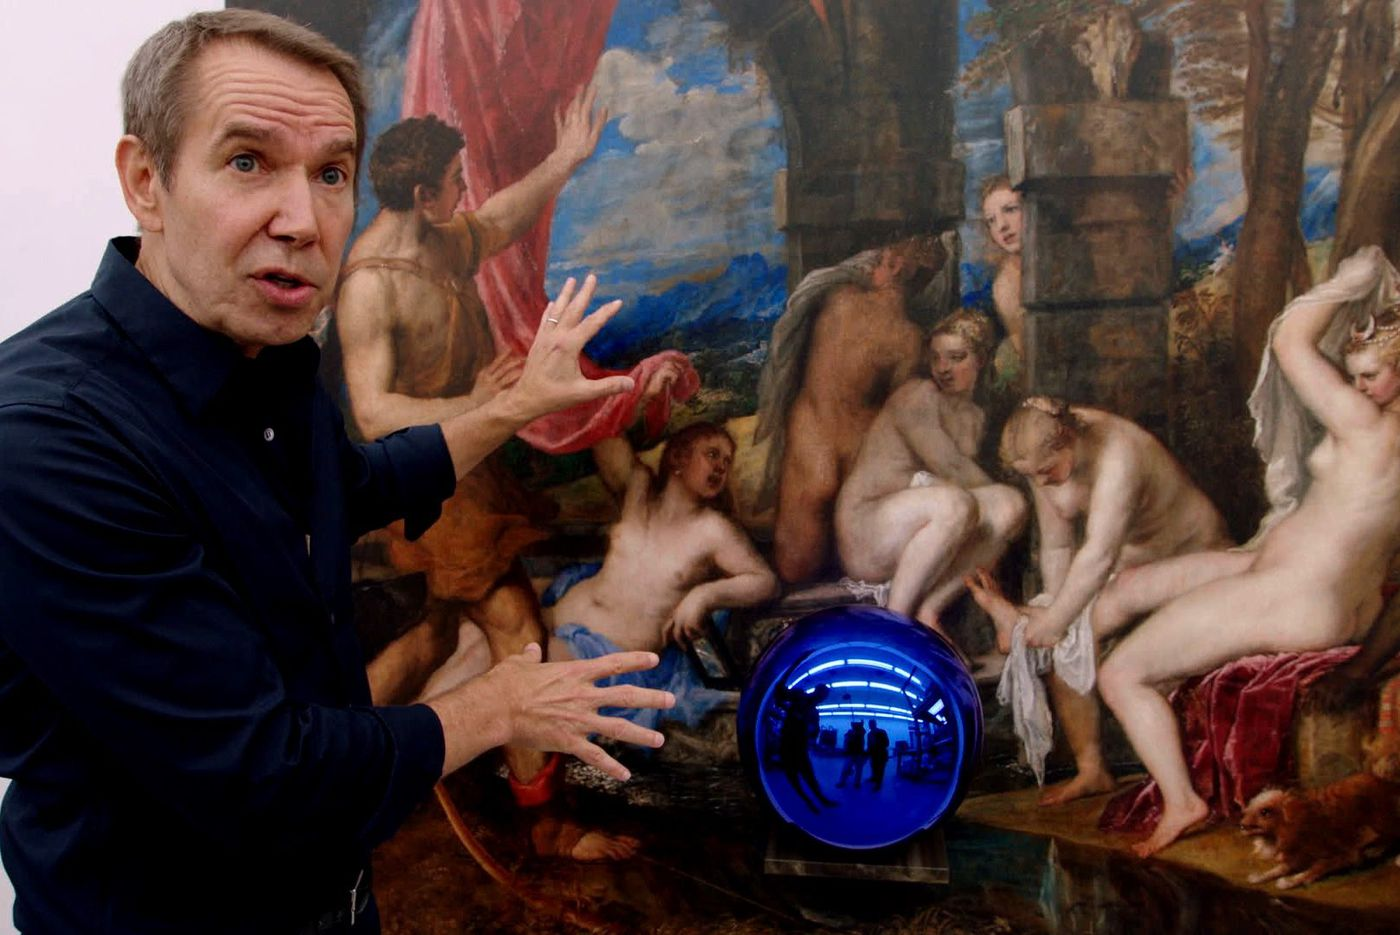 Do record-breaking prices make art great? Nathaniel Kahn calls BS